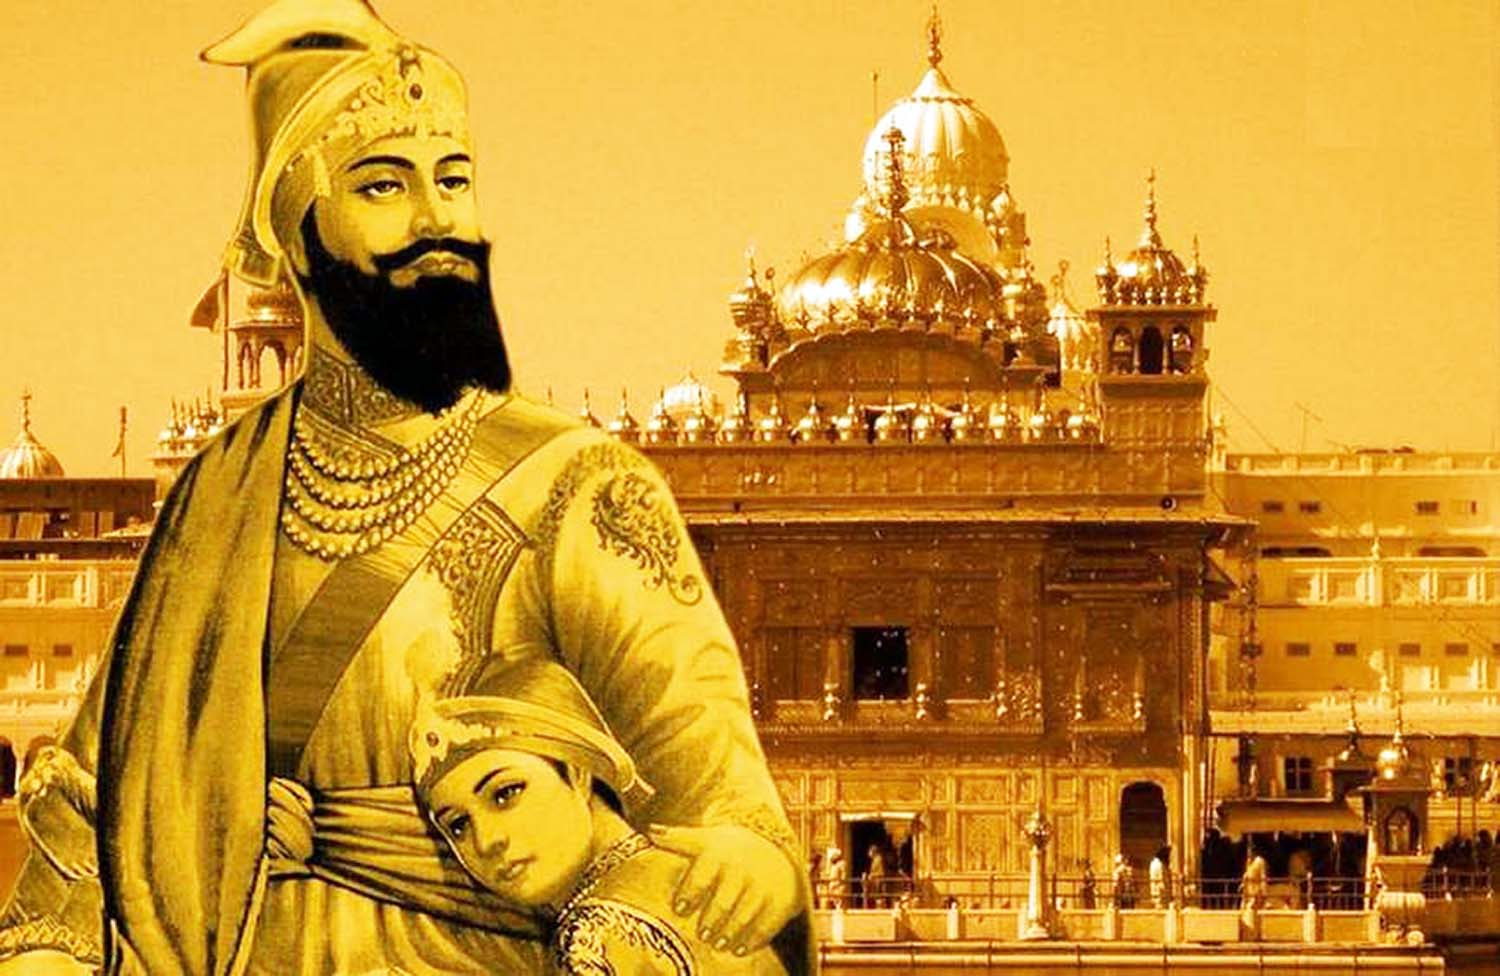 guru gobind singh ji wallpapers free download